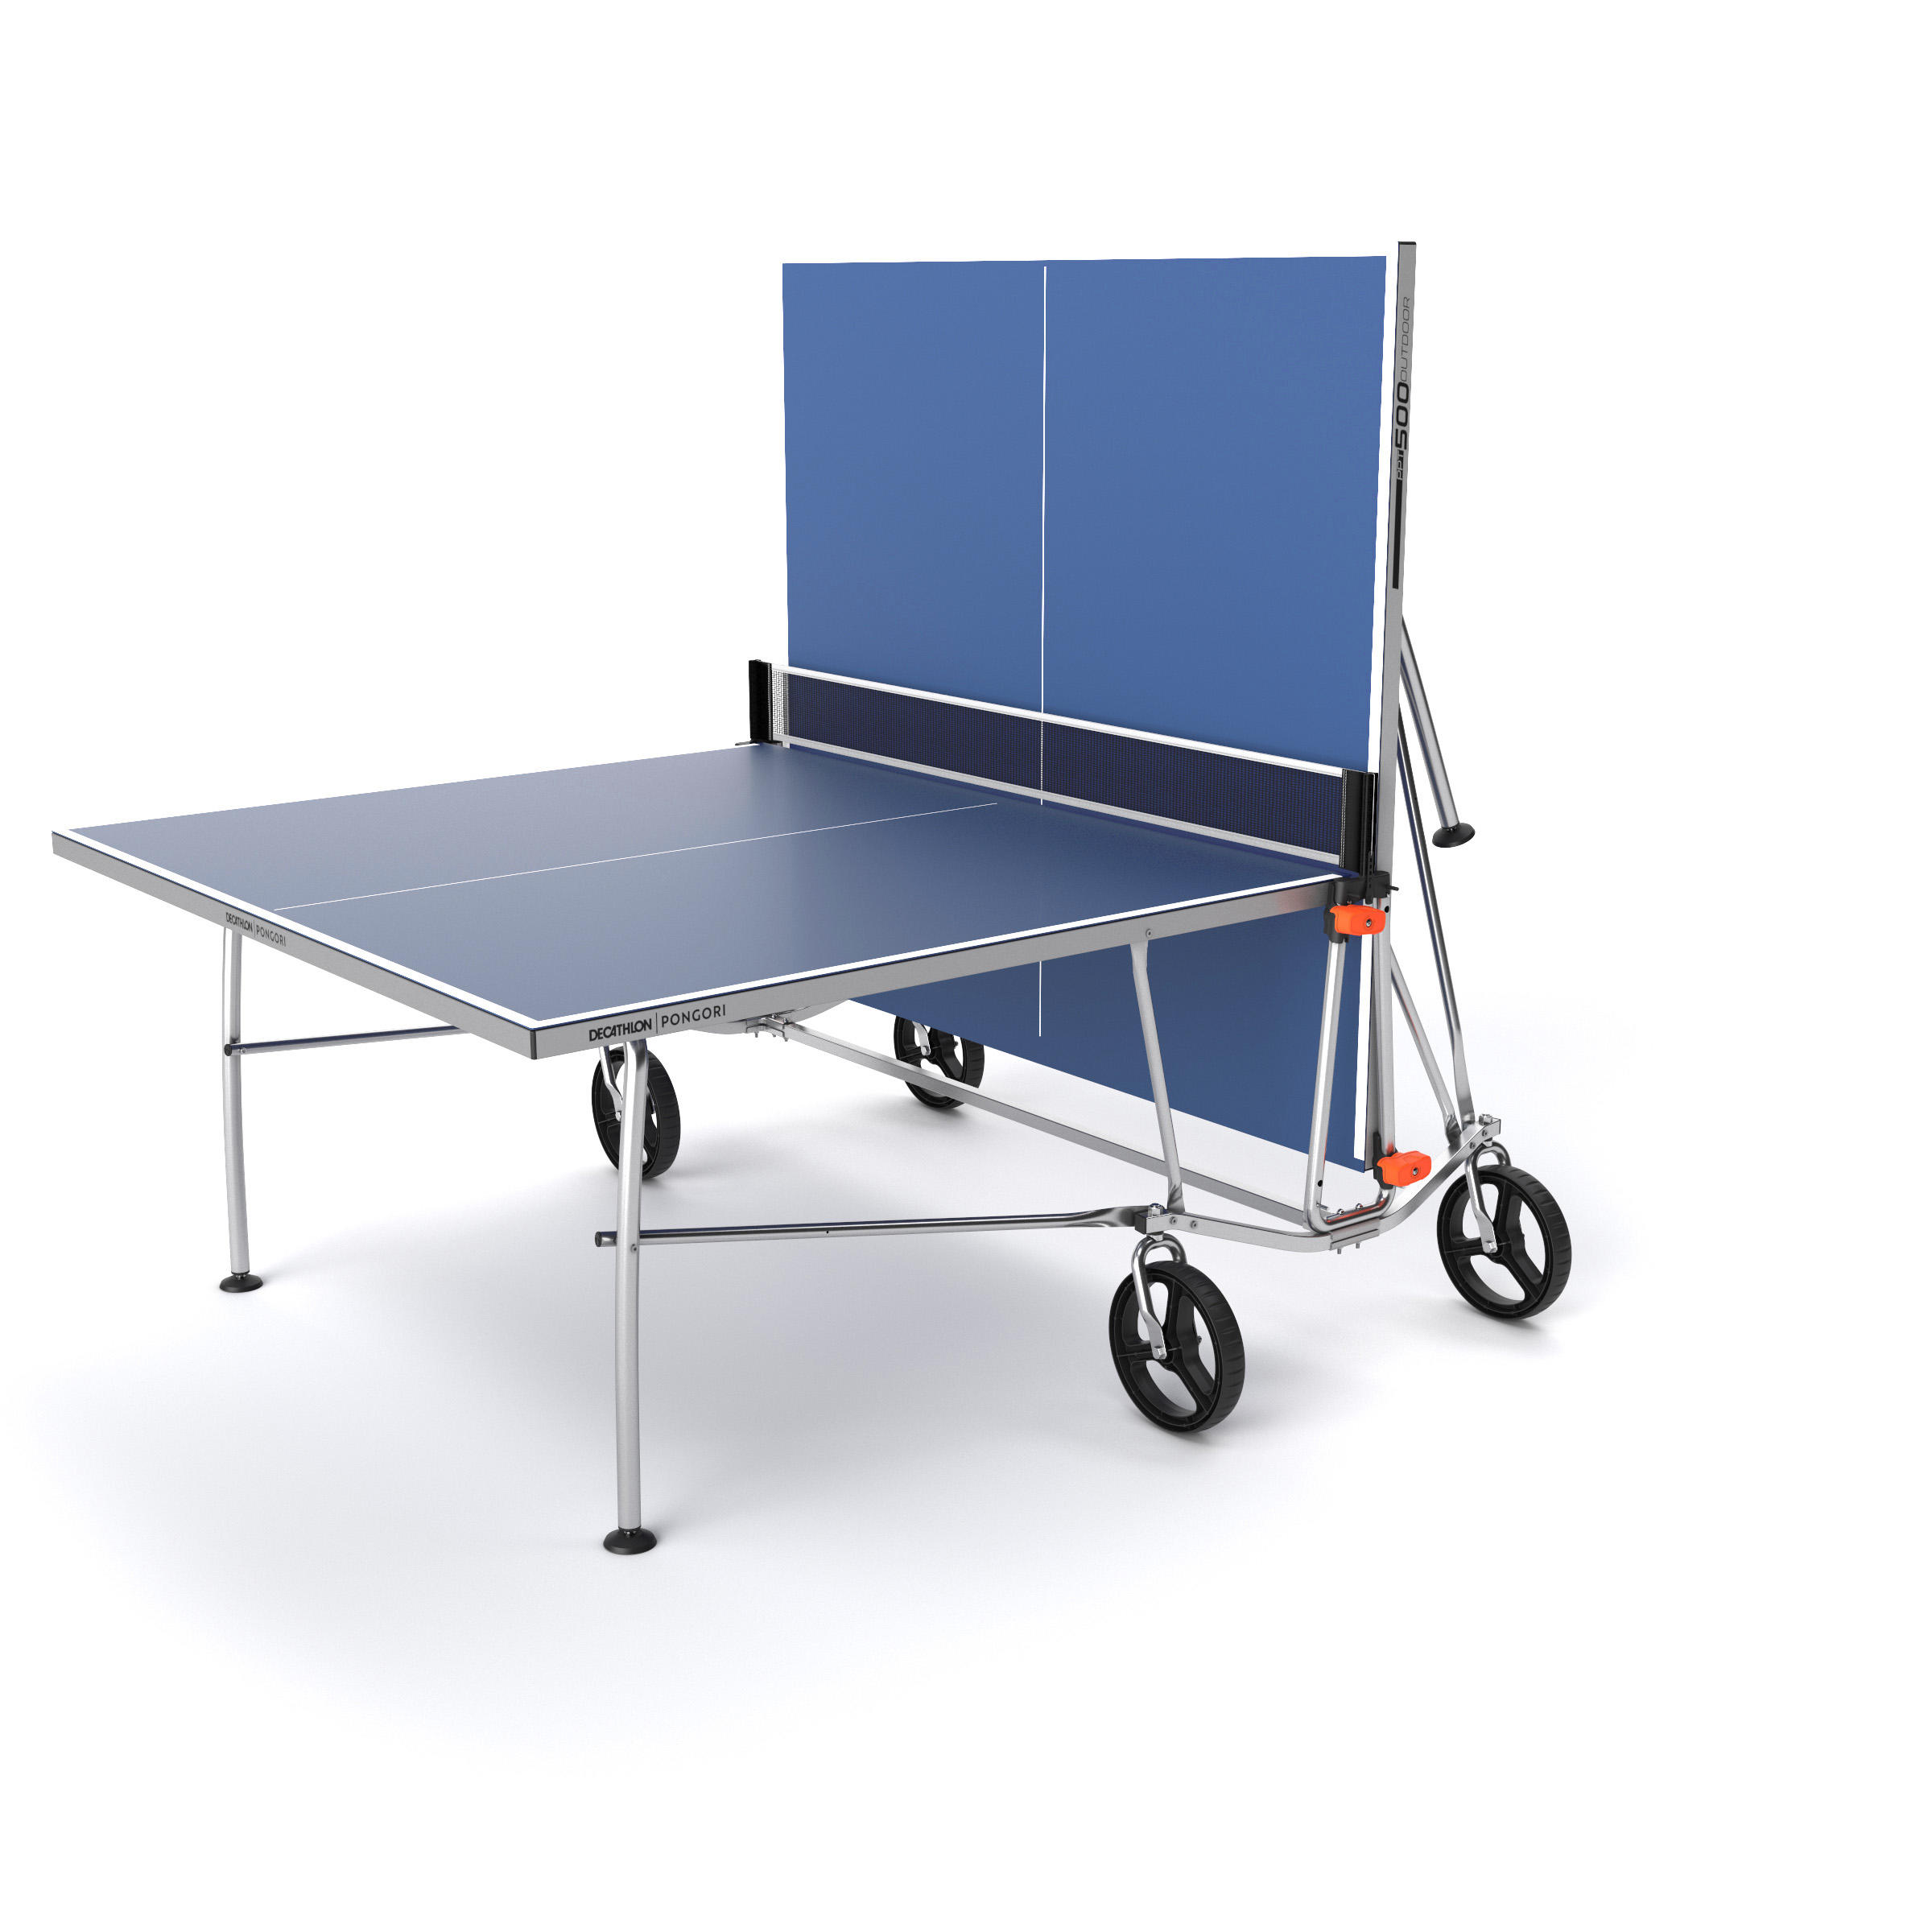 PPT 500 / FT 730 Outdoor Free Table Tennis Table